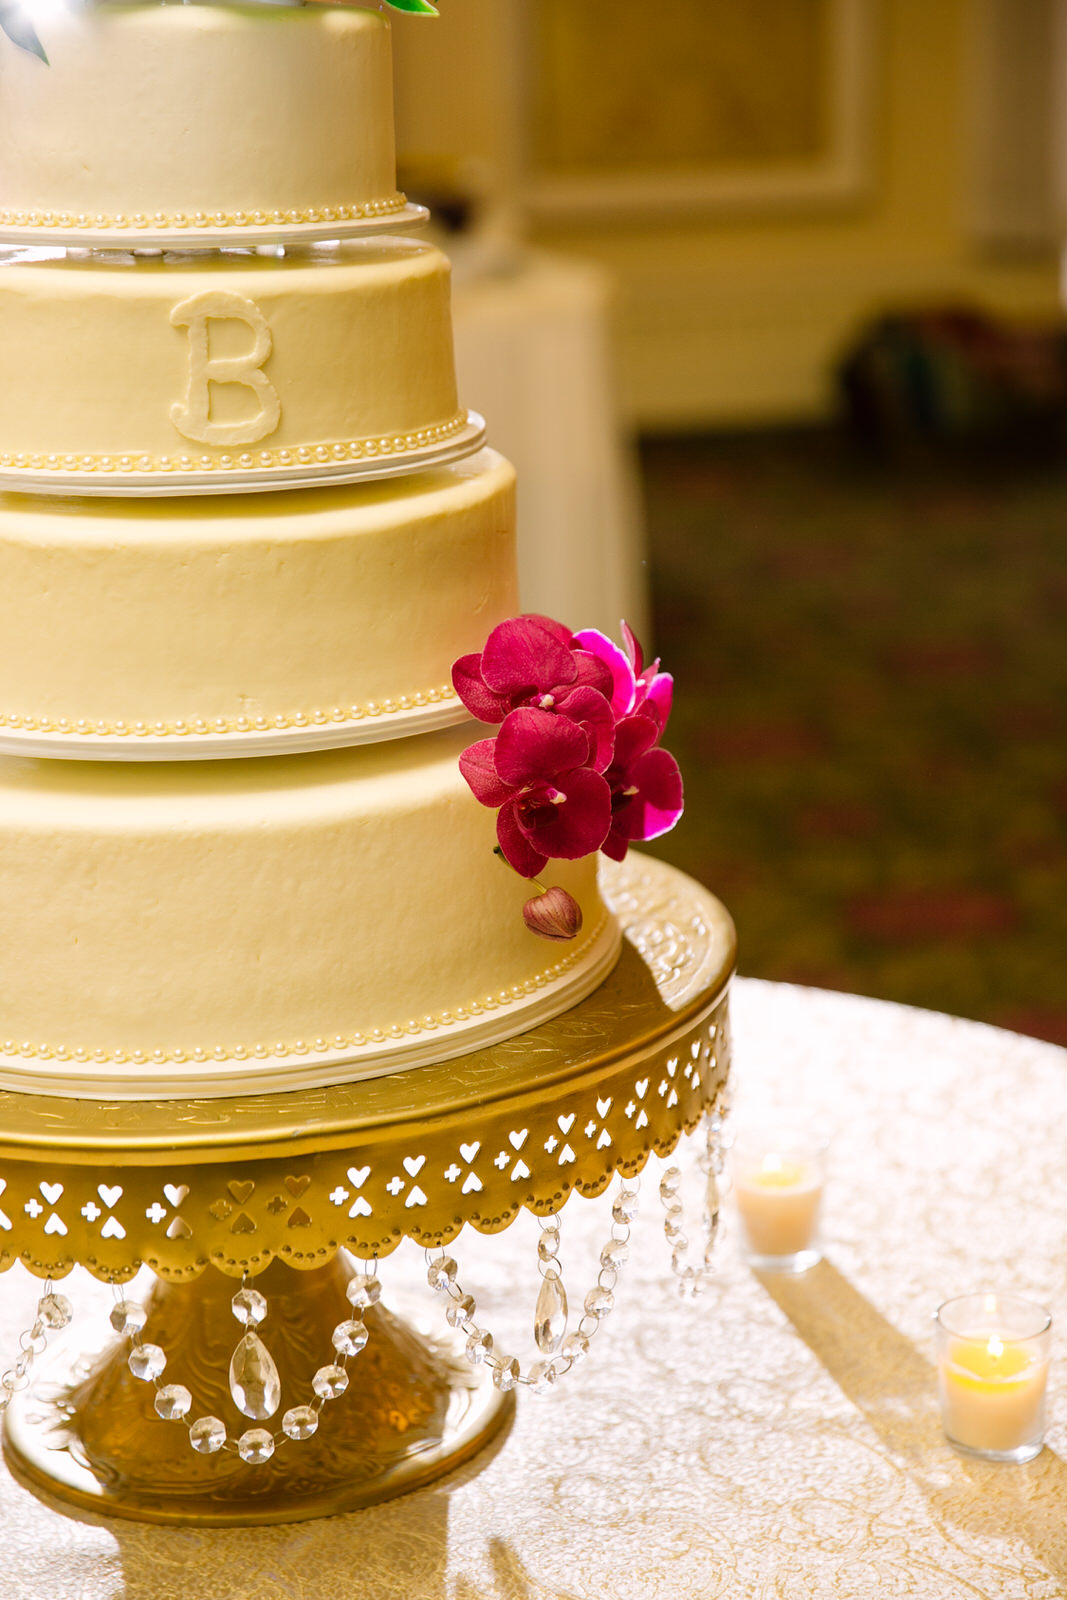 white wedding cake with a pink flower